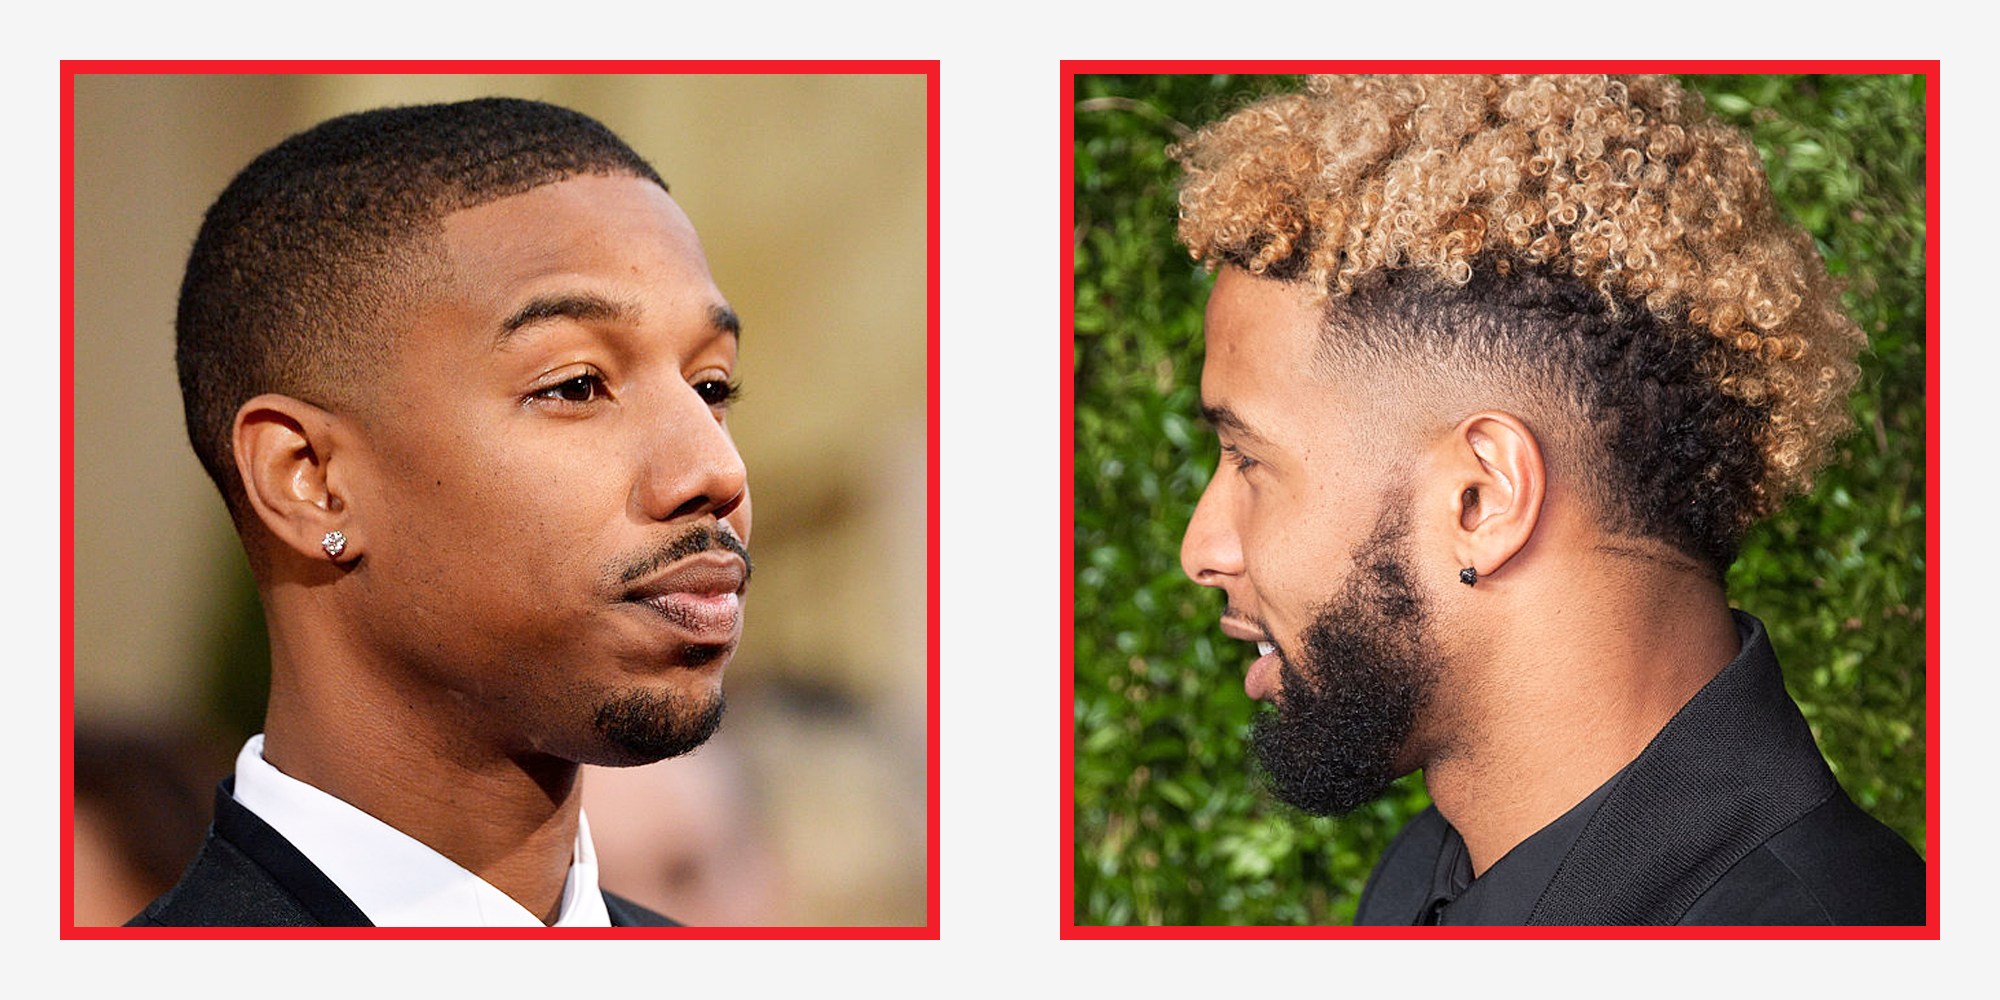 15 Best Haircuts For Black Men Of 2021 According To An Expert